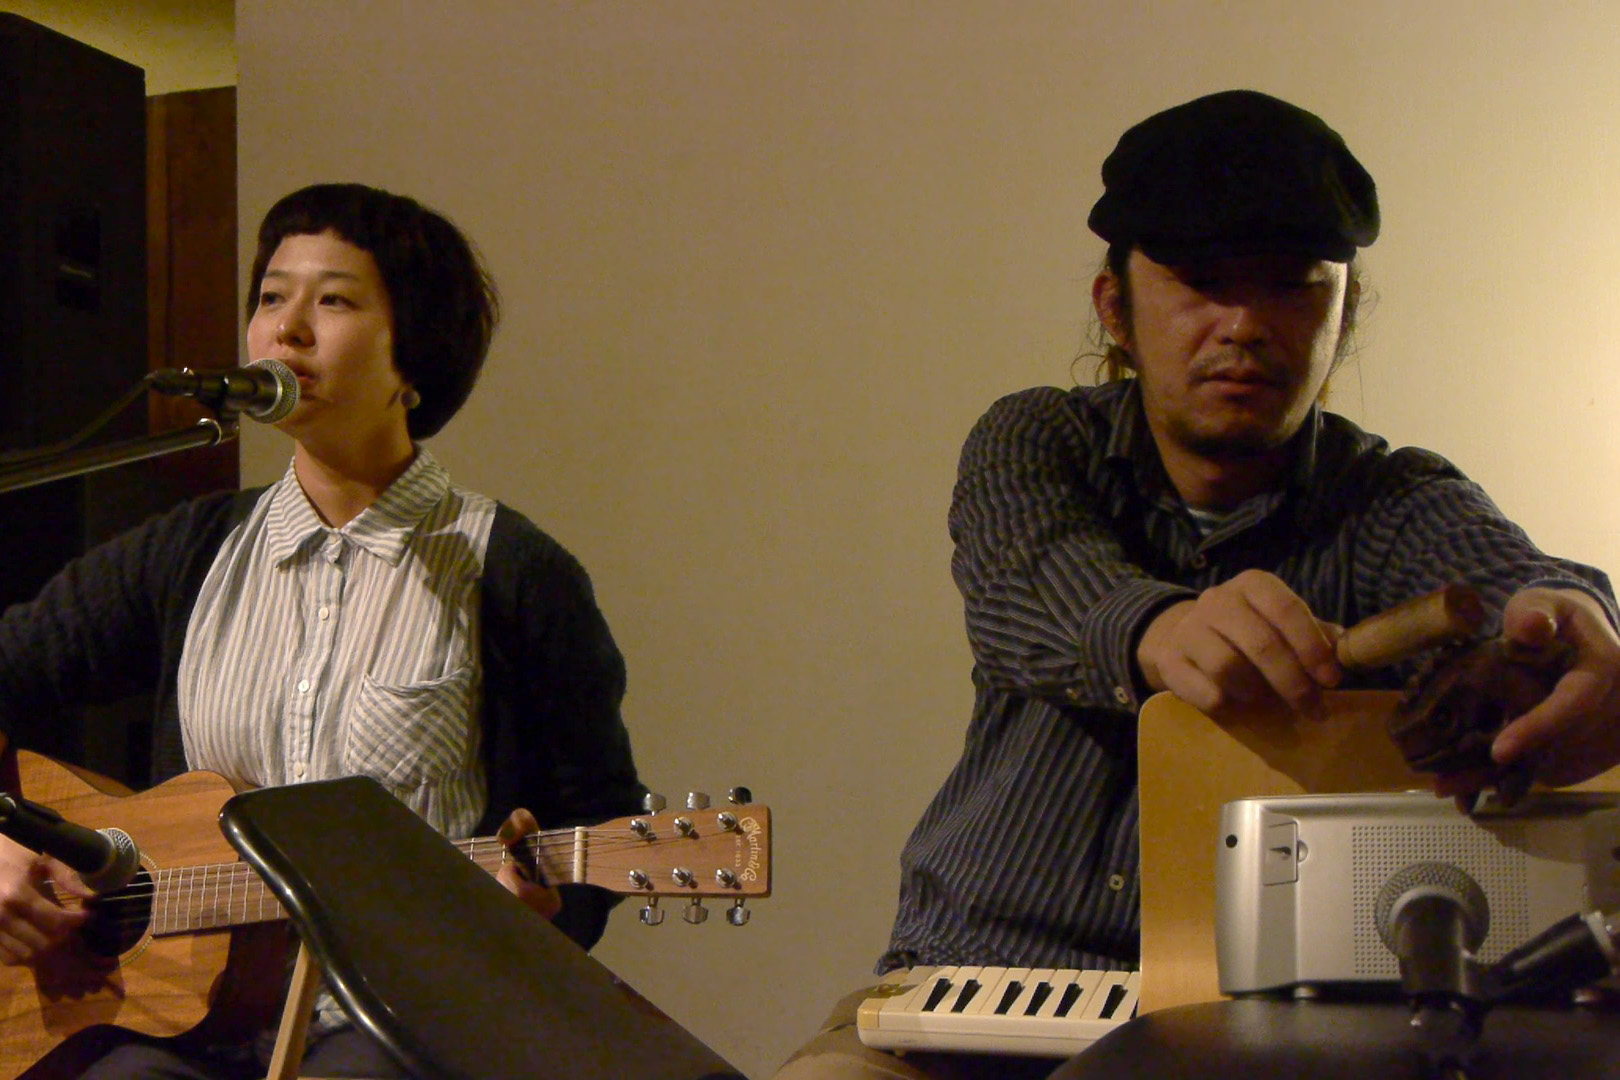 萬人音樂堂Presents レコ発ライブツアー in 沖縄 2012 OKINAWA HARMLESS @ 沖縄 Cafe & Dining Bar THREE_c0000587_1951397.jpg